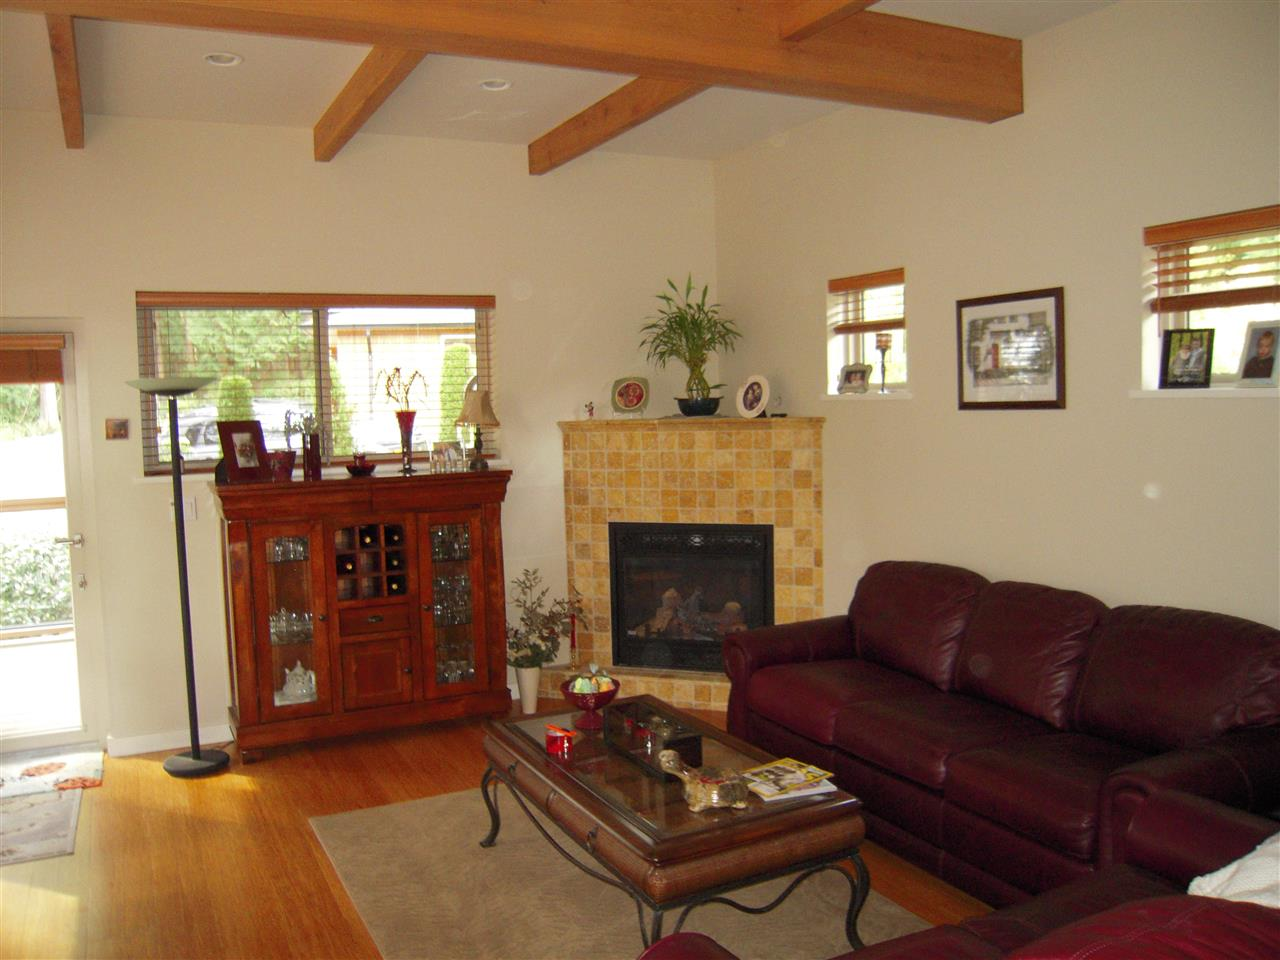 Photo 3: 5447 WAKEFIELD Road in Sechelt: Sechelt District House for sale (Sunshine Coast)  : MLS® # R2047962